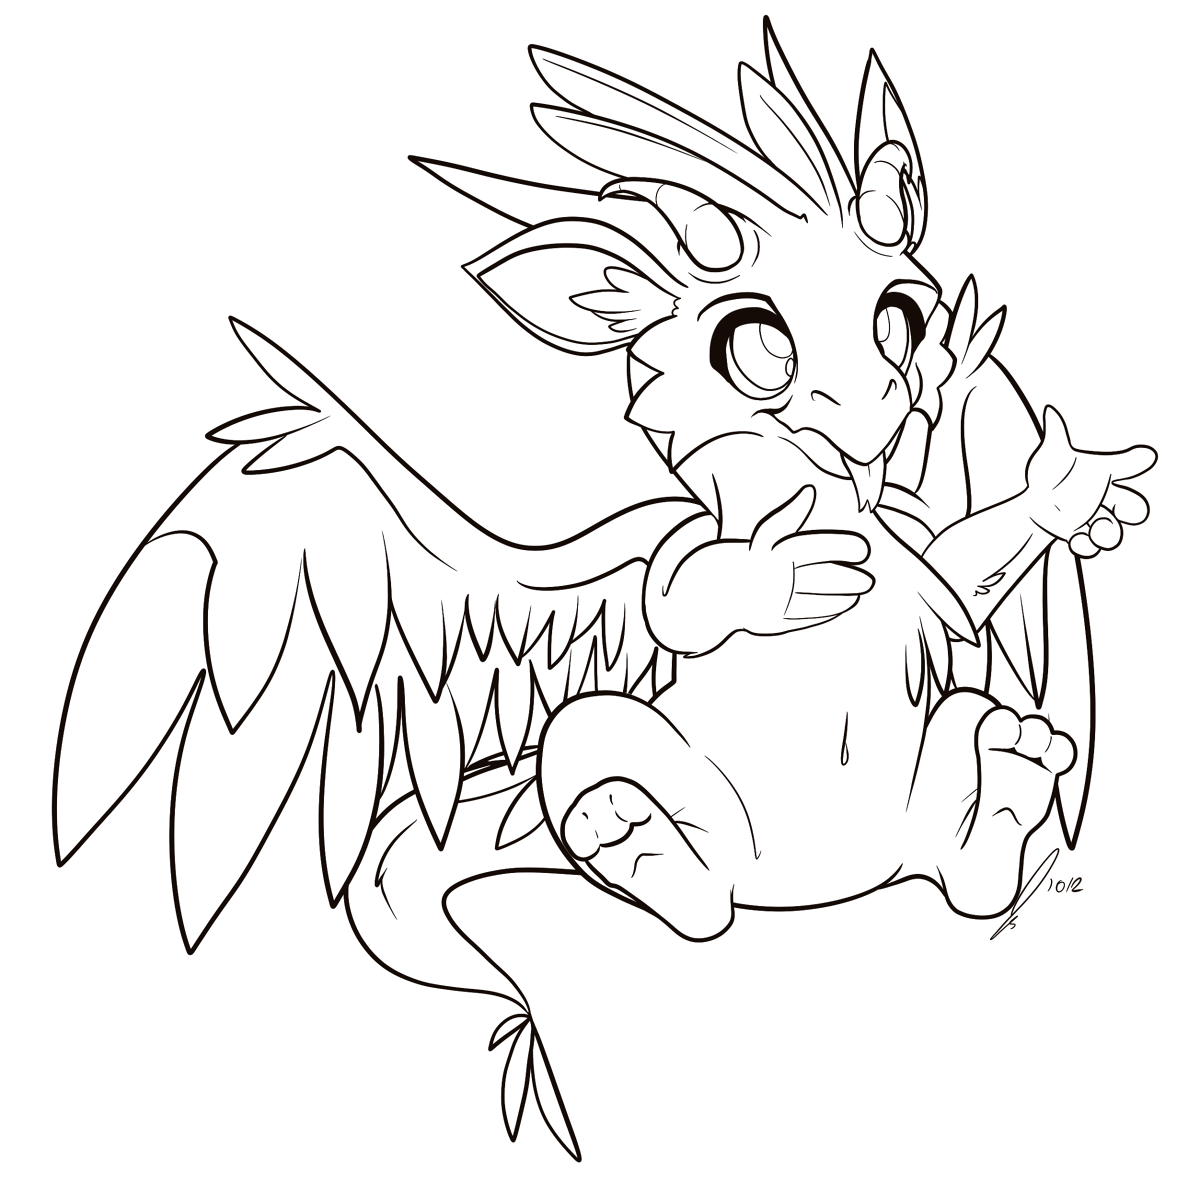 Dragon Lineart : Dragon whelp lineart by jaclynonacloud on deviantart